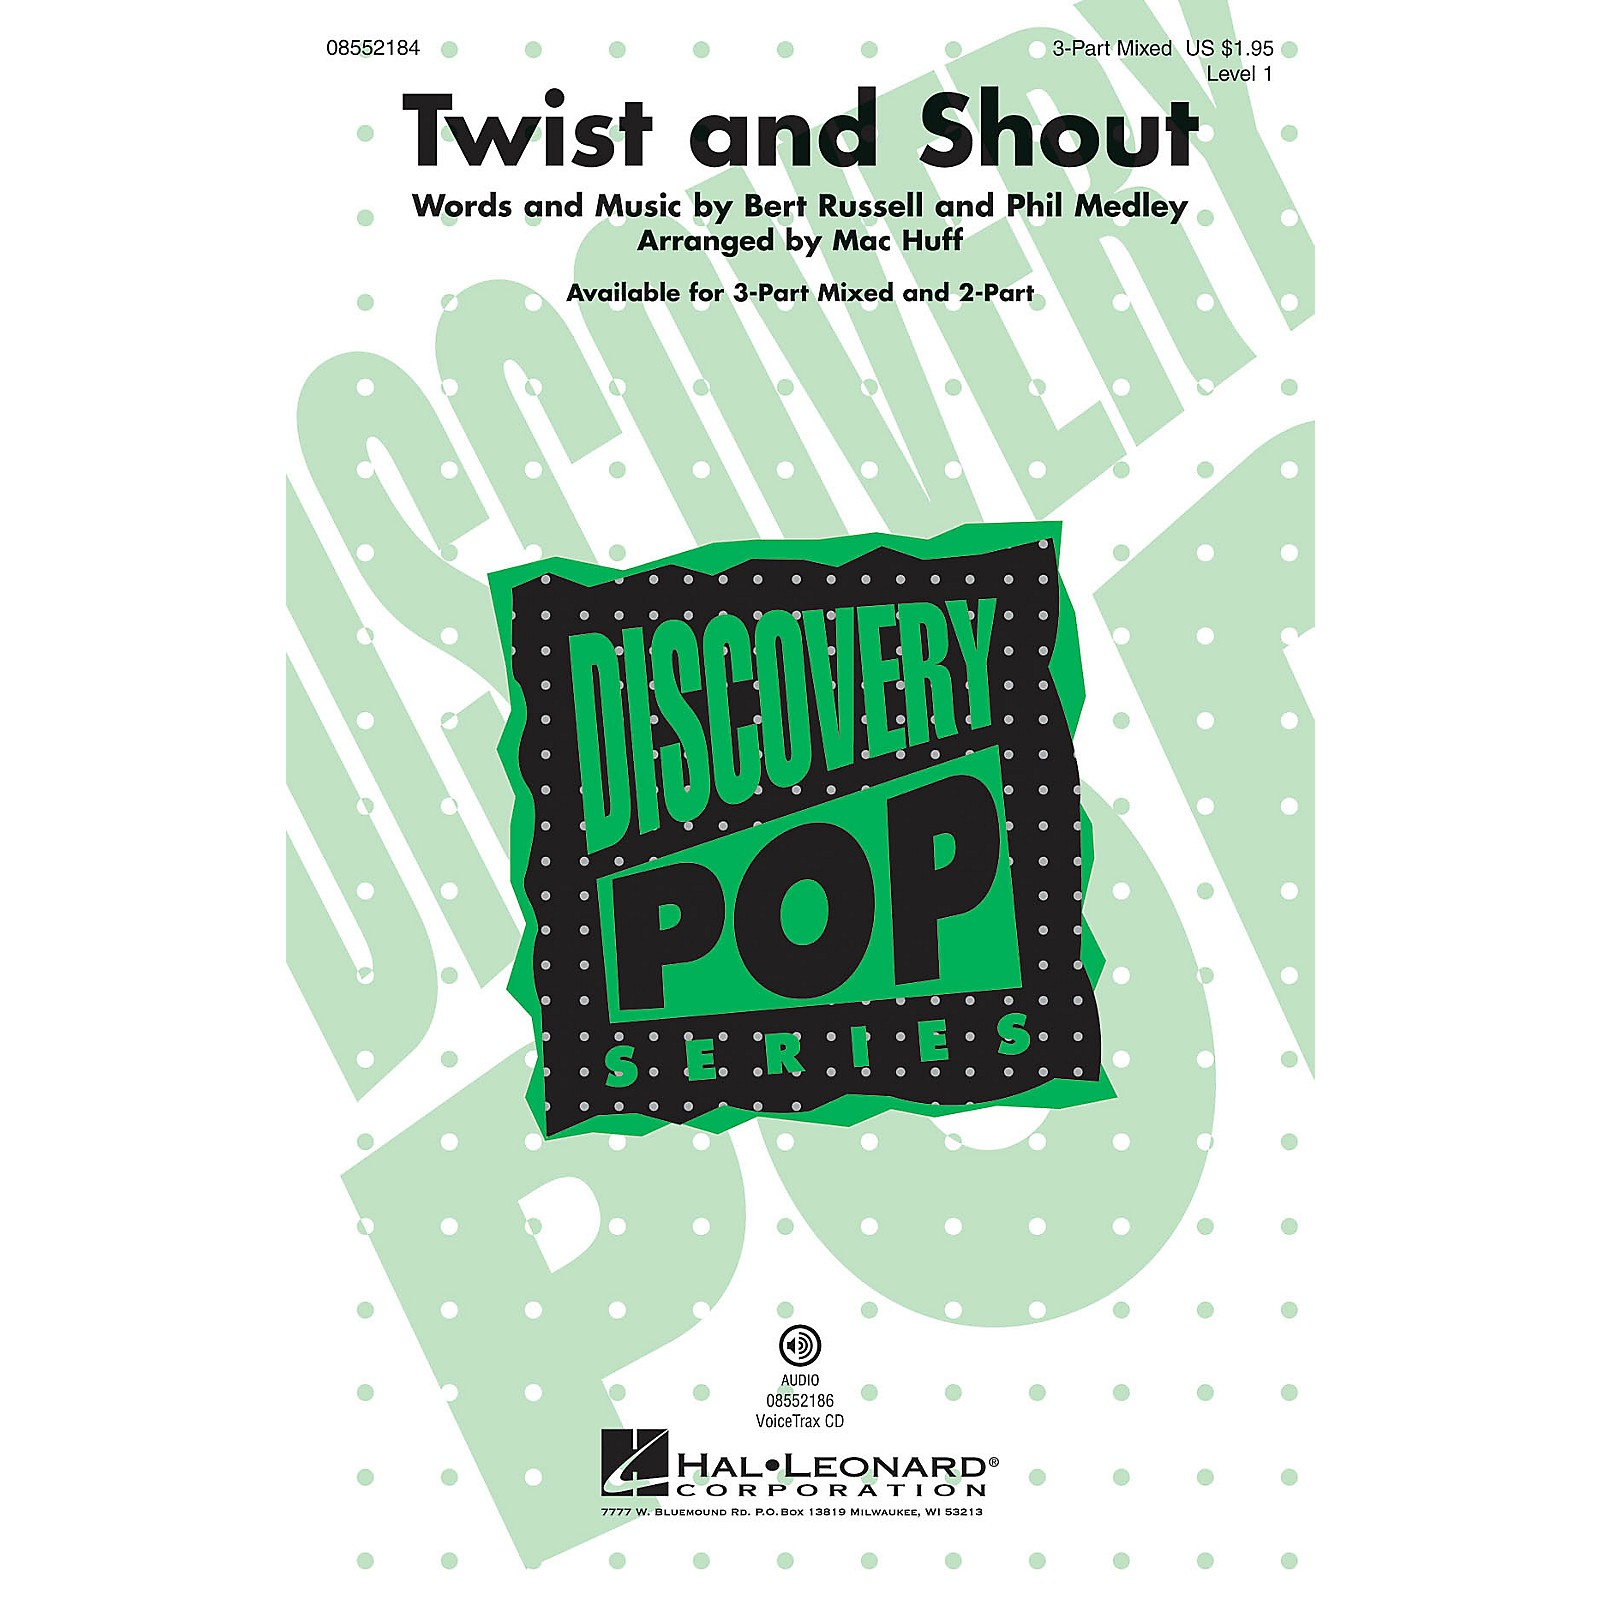 Hal Leonard Twist and Shout (Discovery Level 1) 2-Part Arranged by Mac Huff